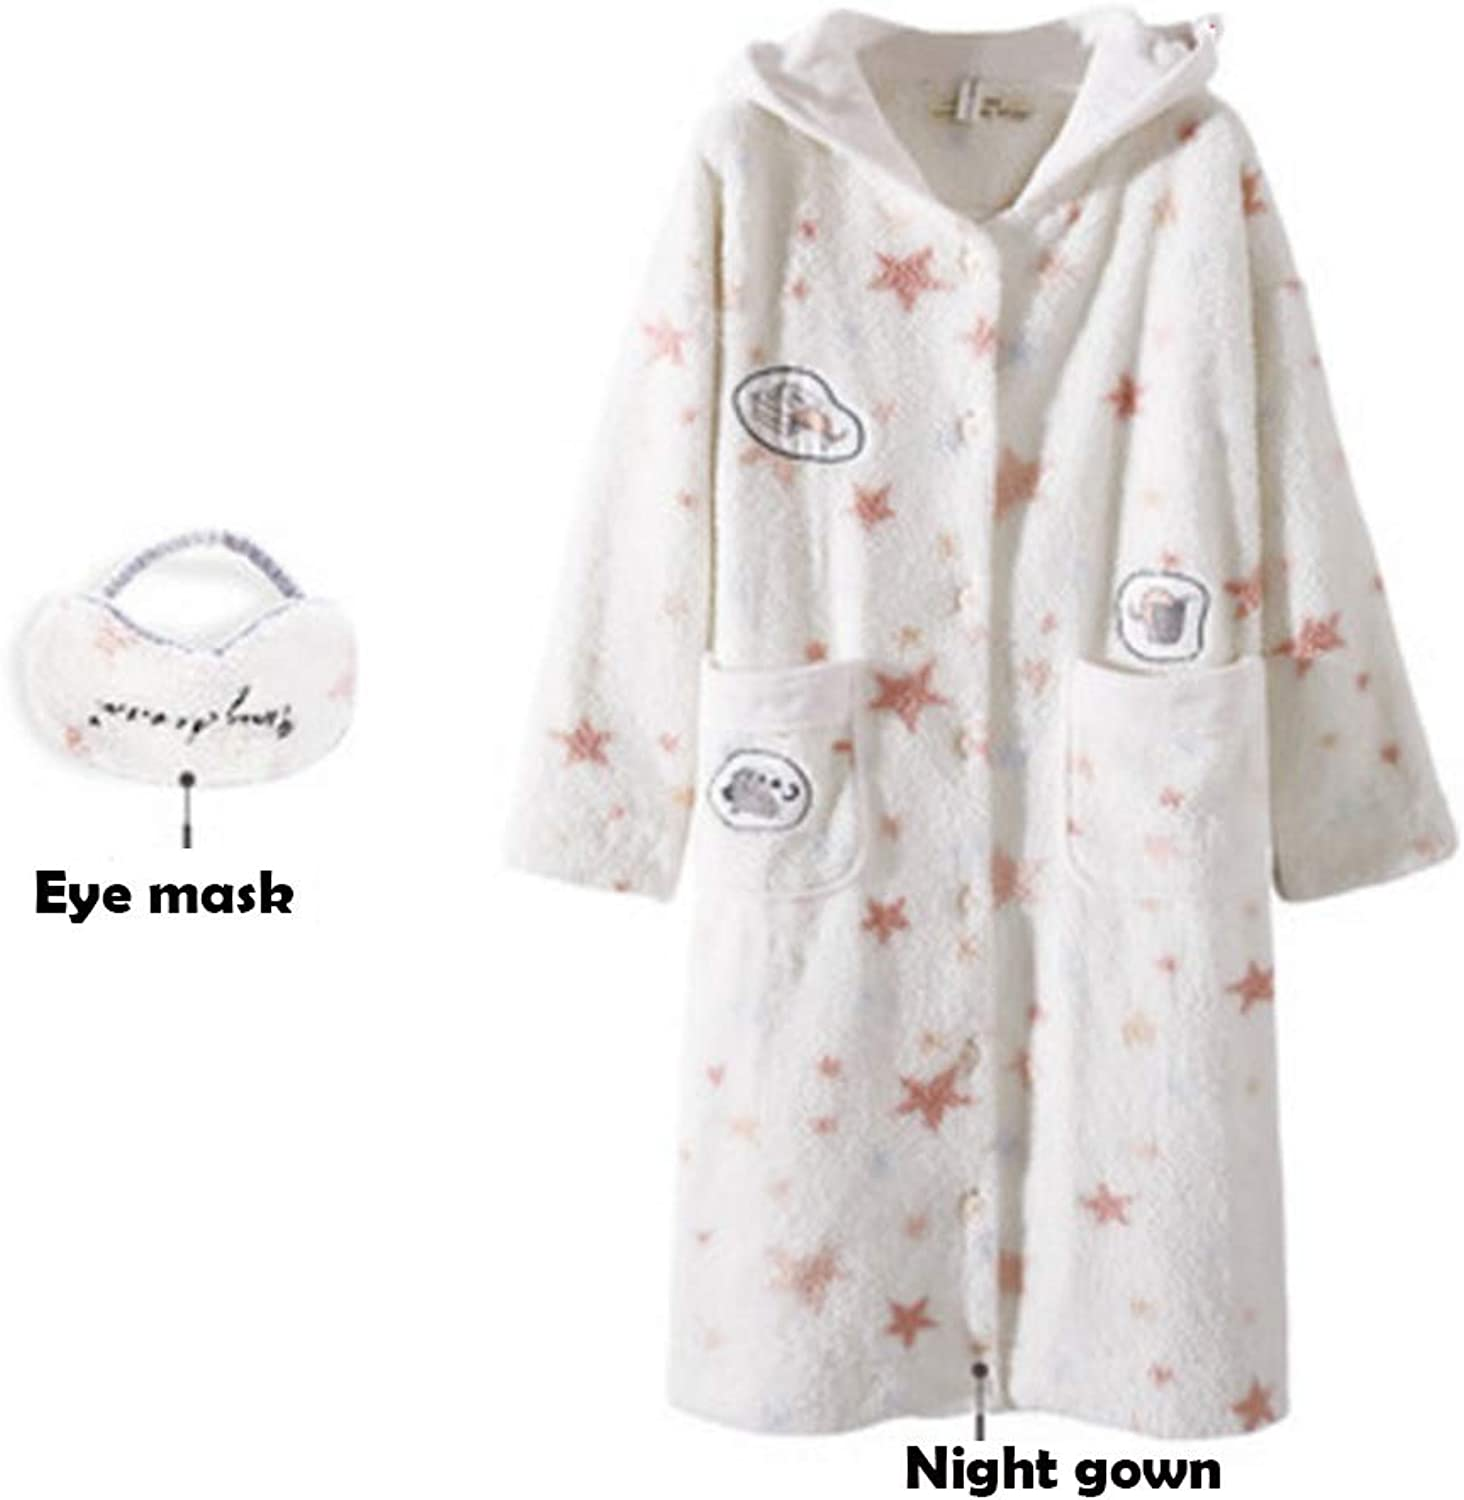 NAN Liang 100% Cotton Nightgown Female Autumn and Winter Thickening Cartoon Plus Long Hooded Home Service  Send Eye mask Soft (Size   XL)